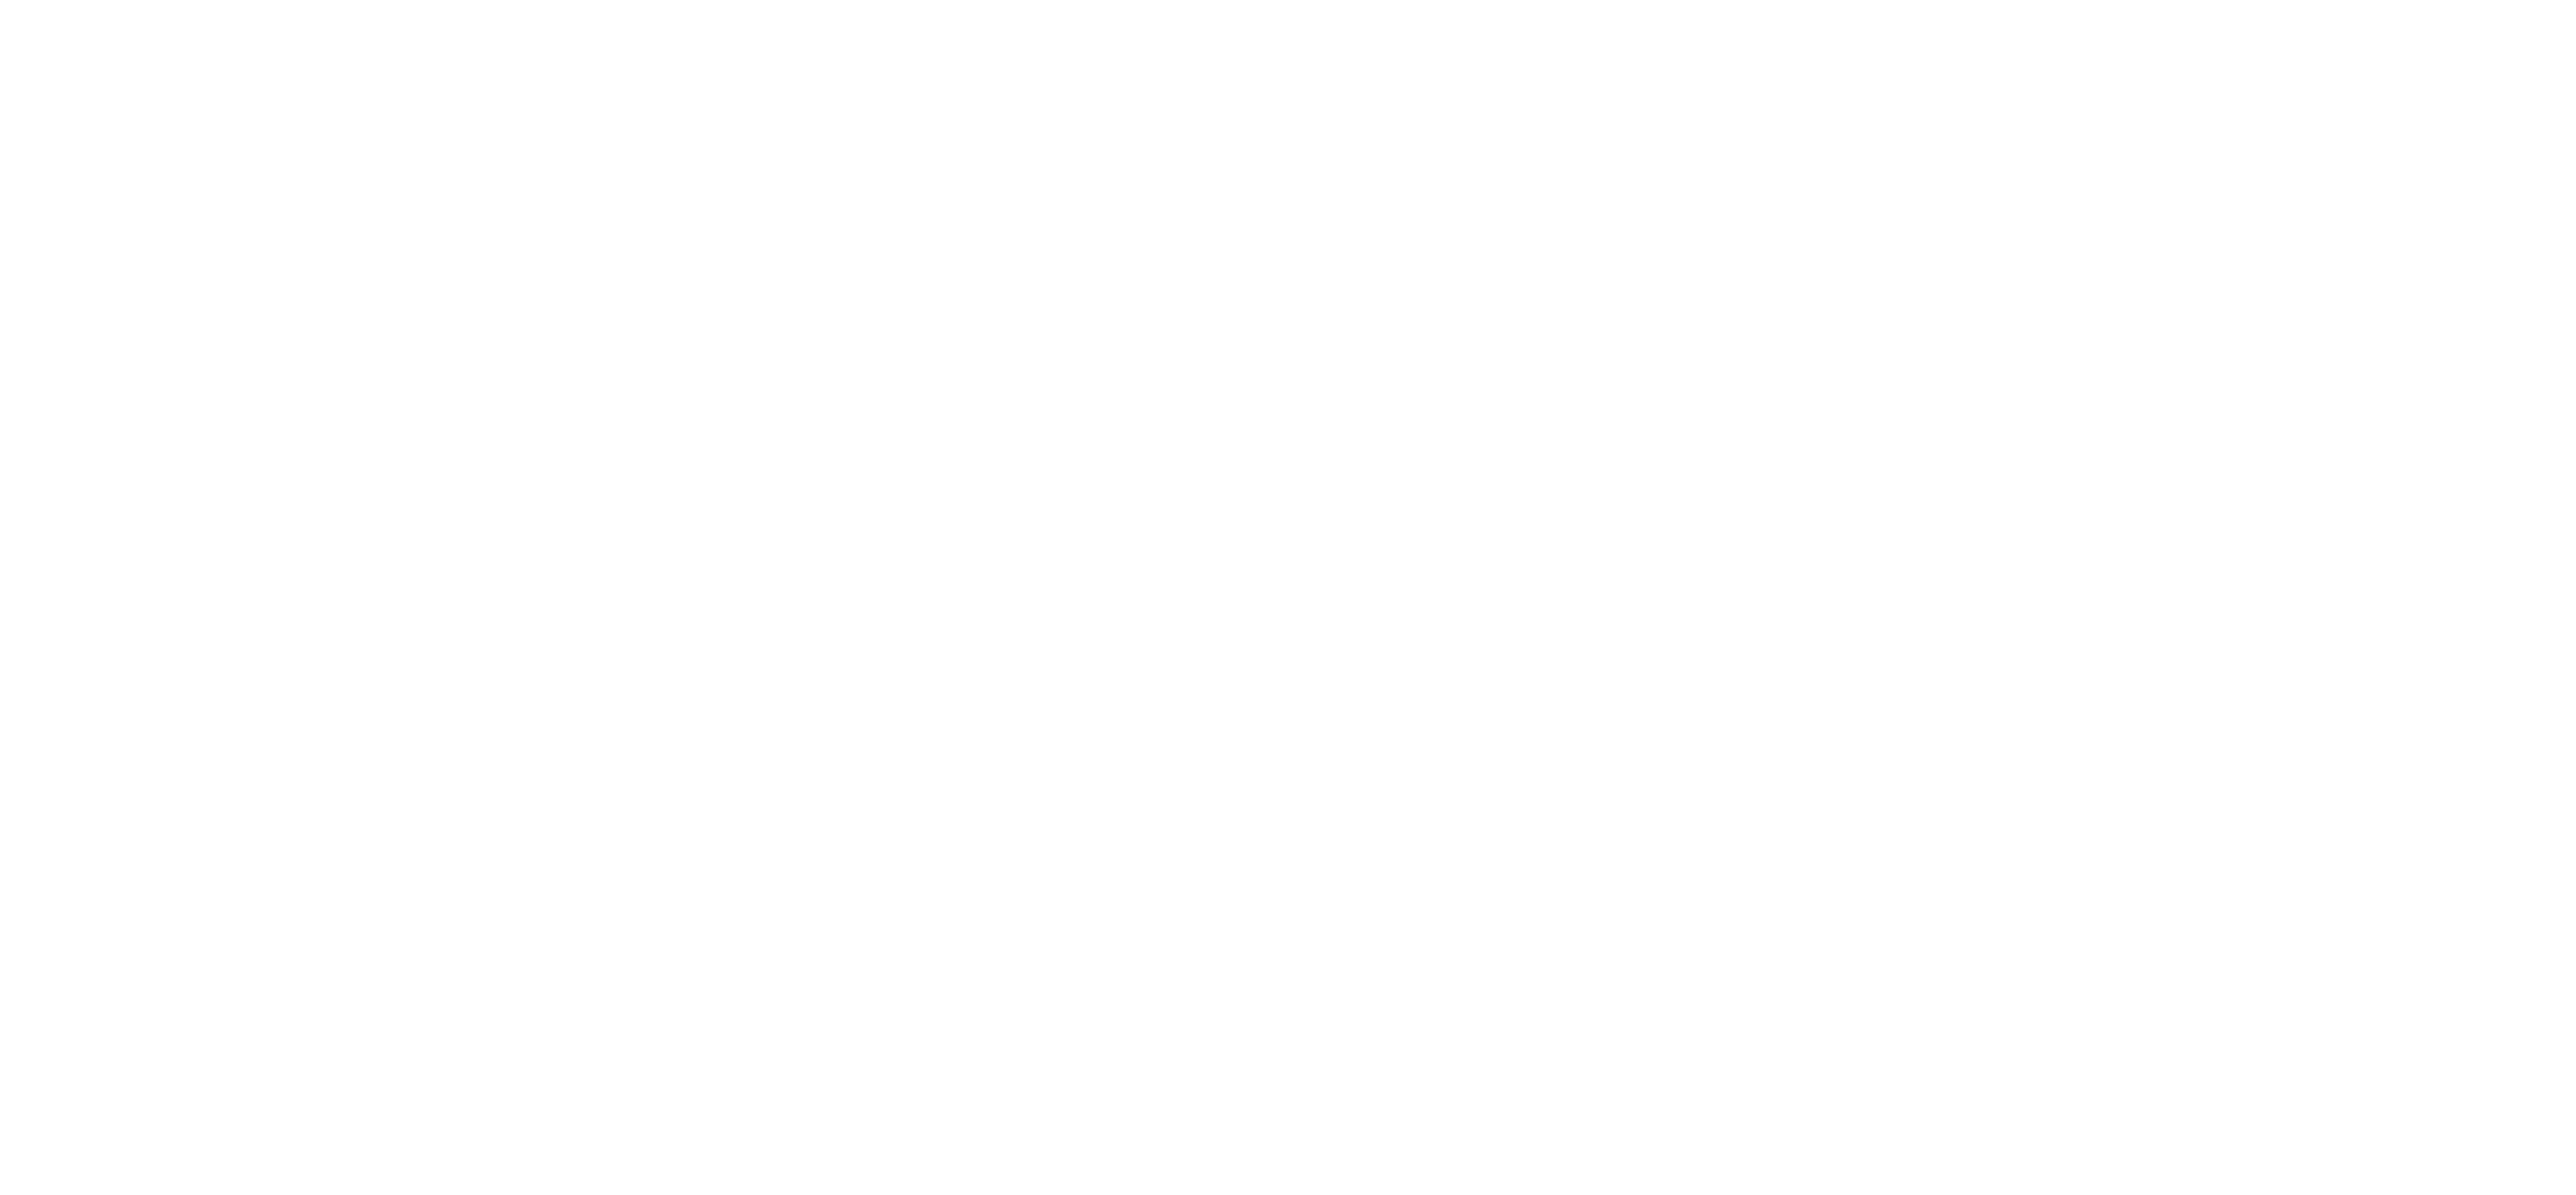 Chicagoland Realty & Associates Inc